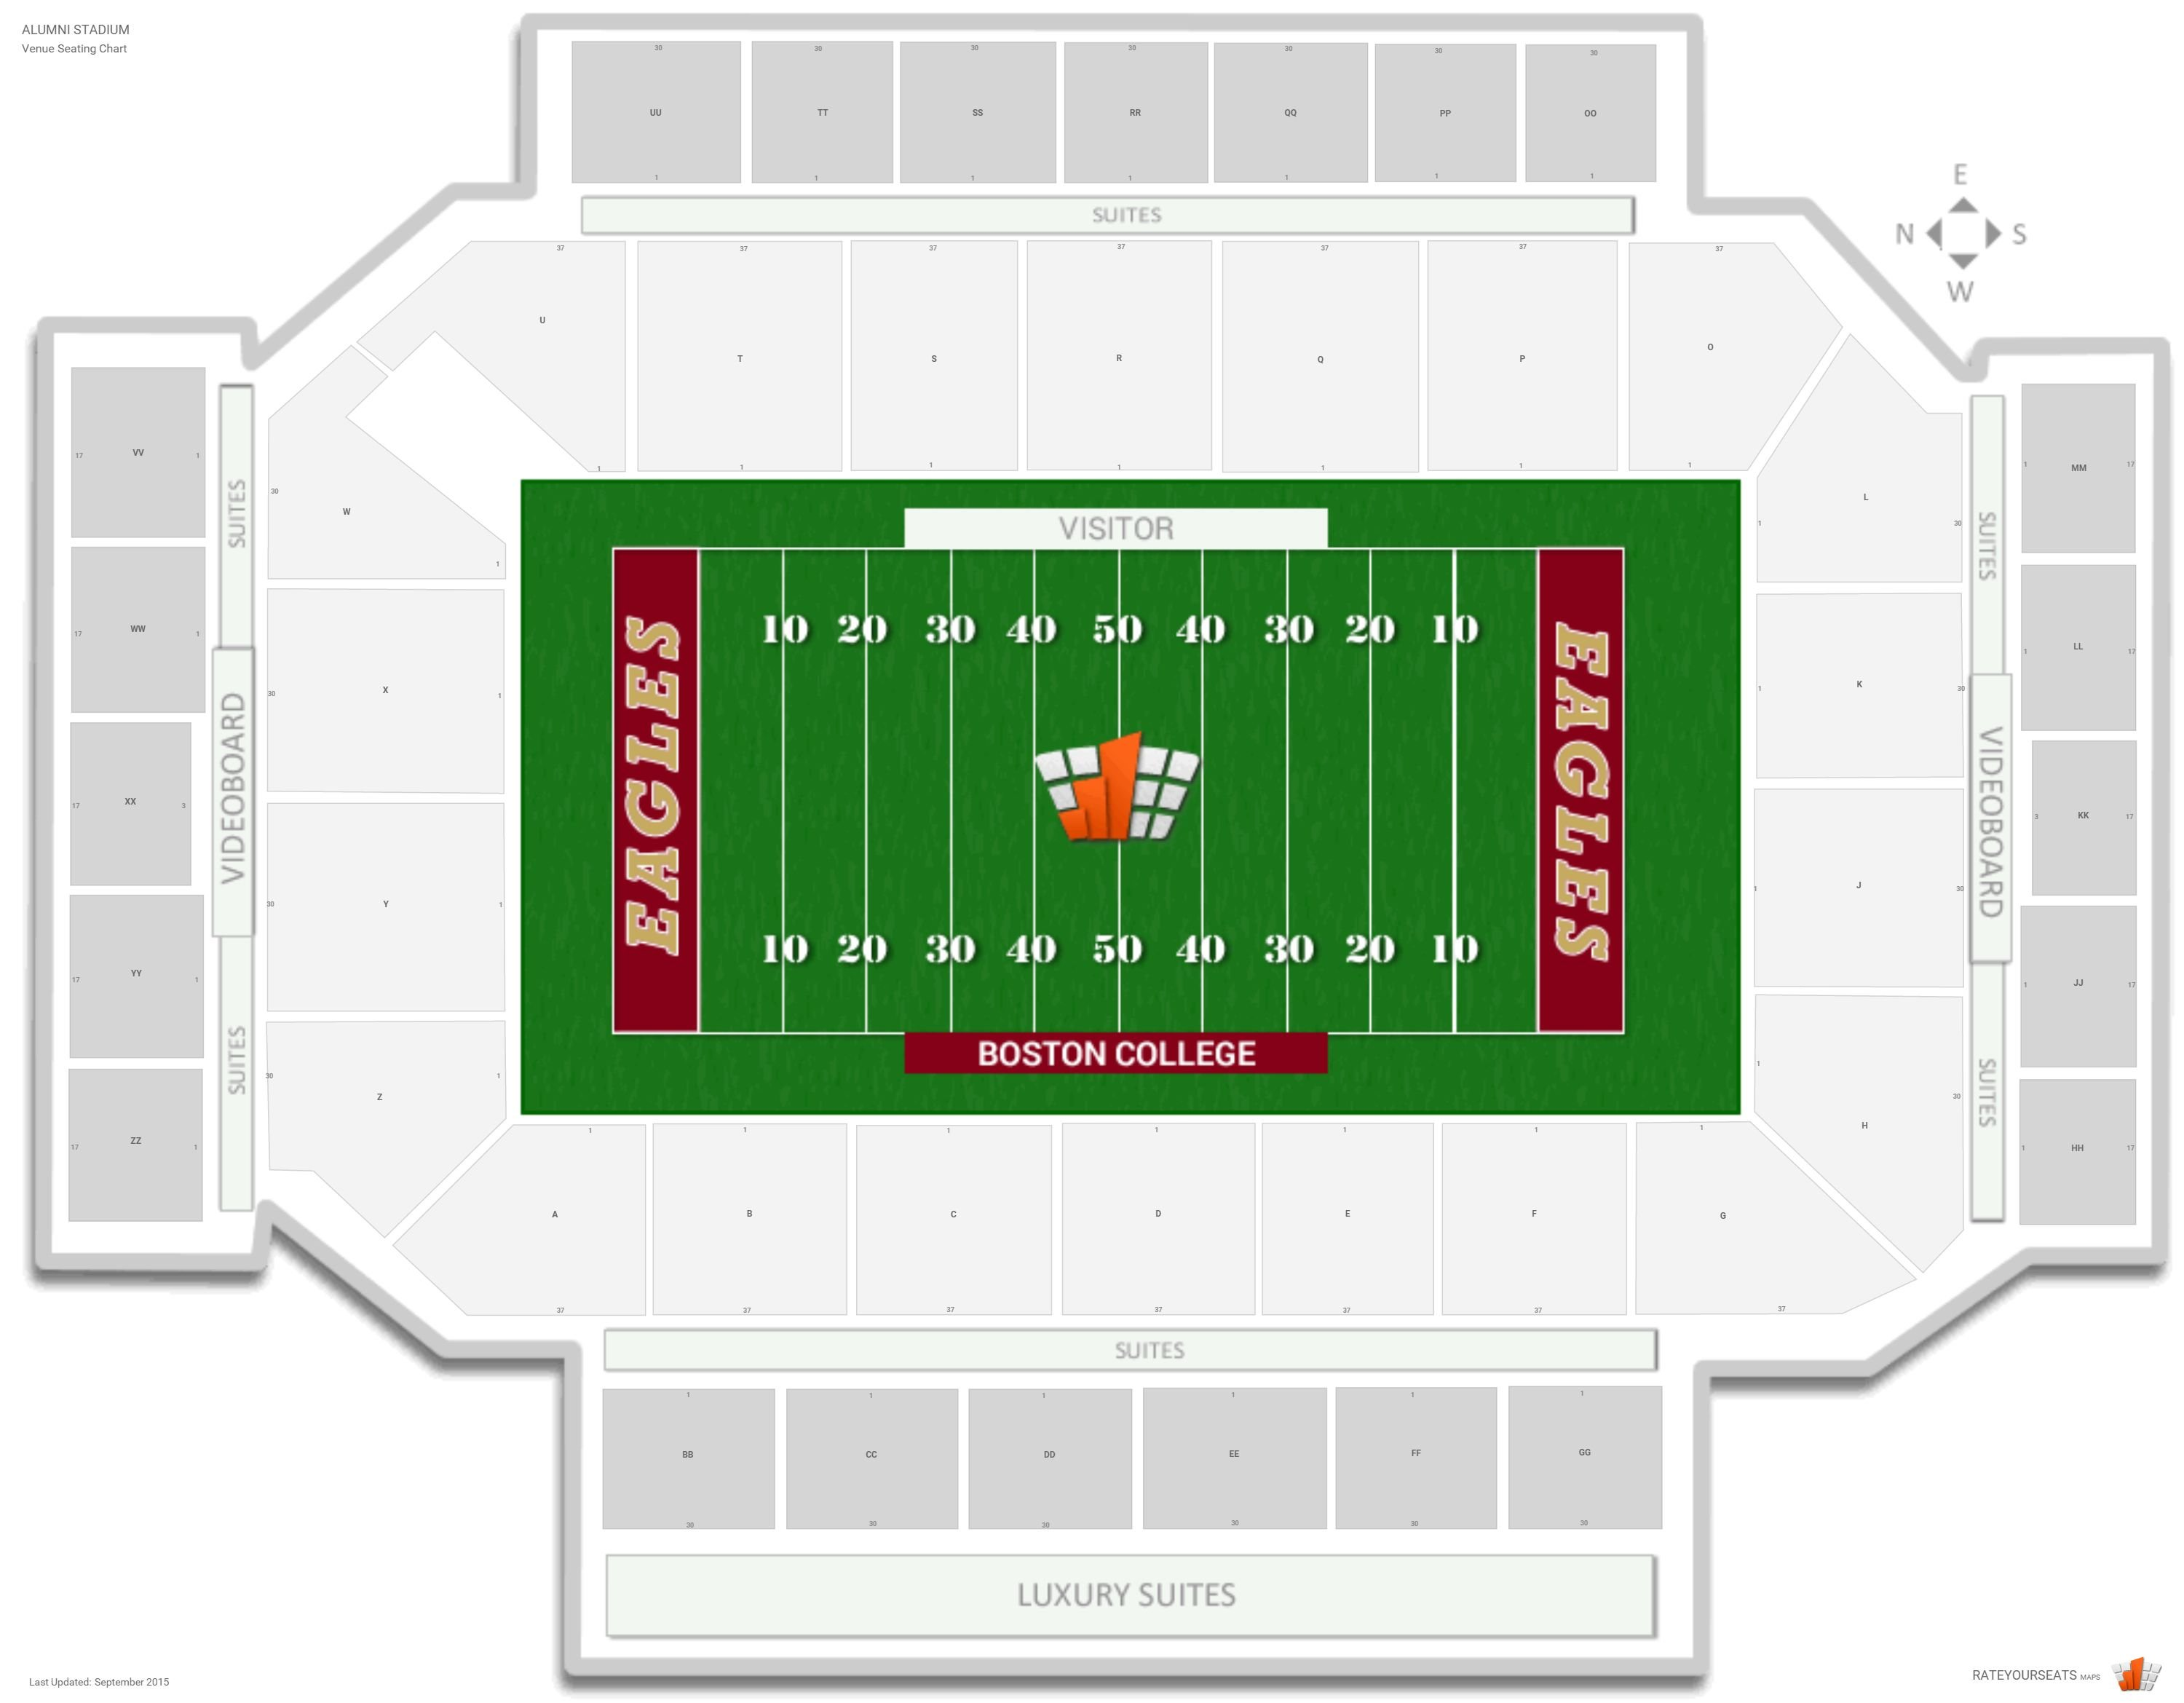 Alumni stadium boston college seating guide rateyourseats com